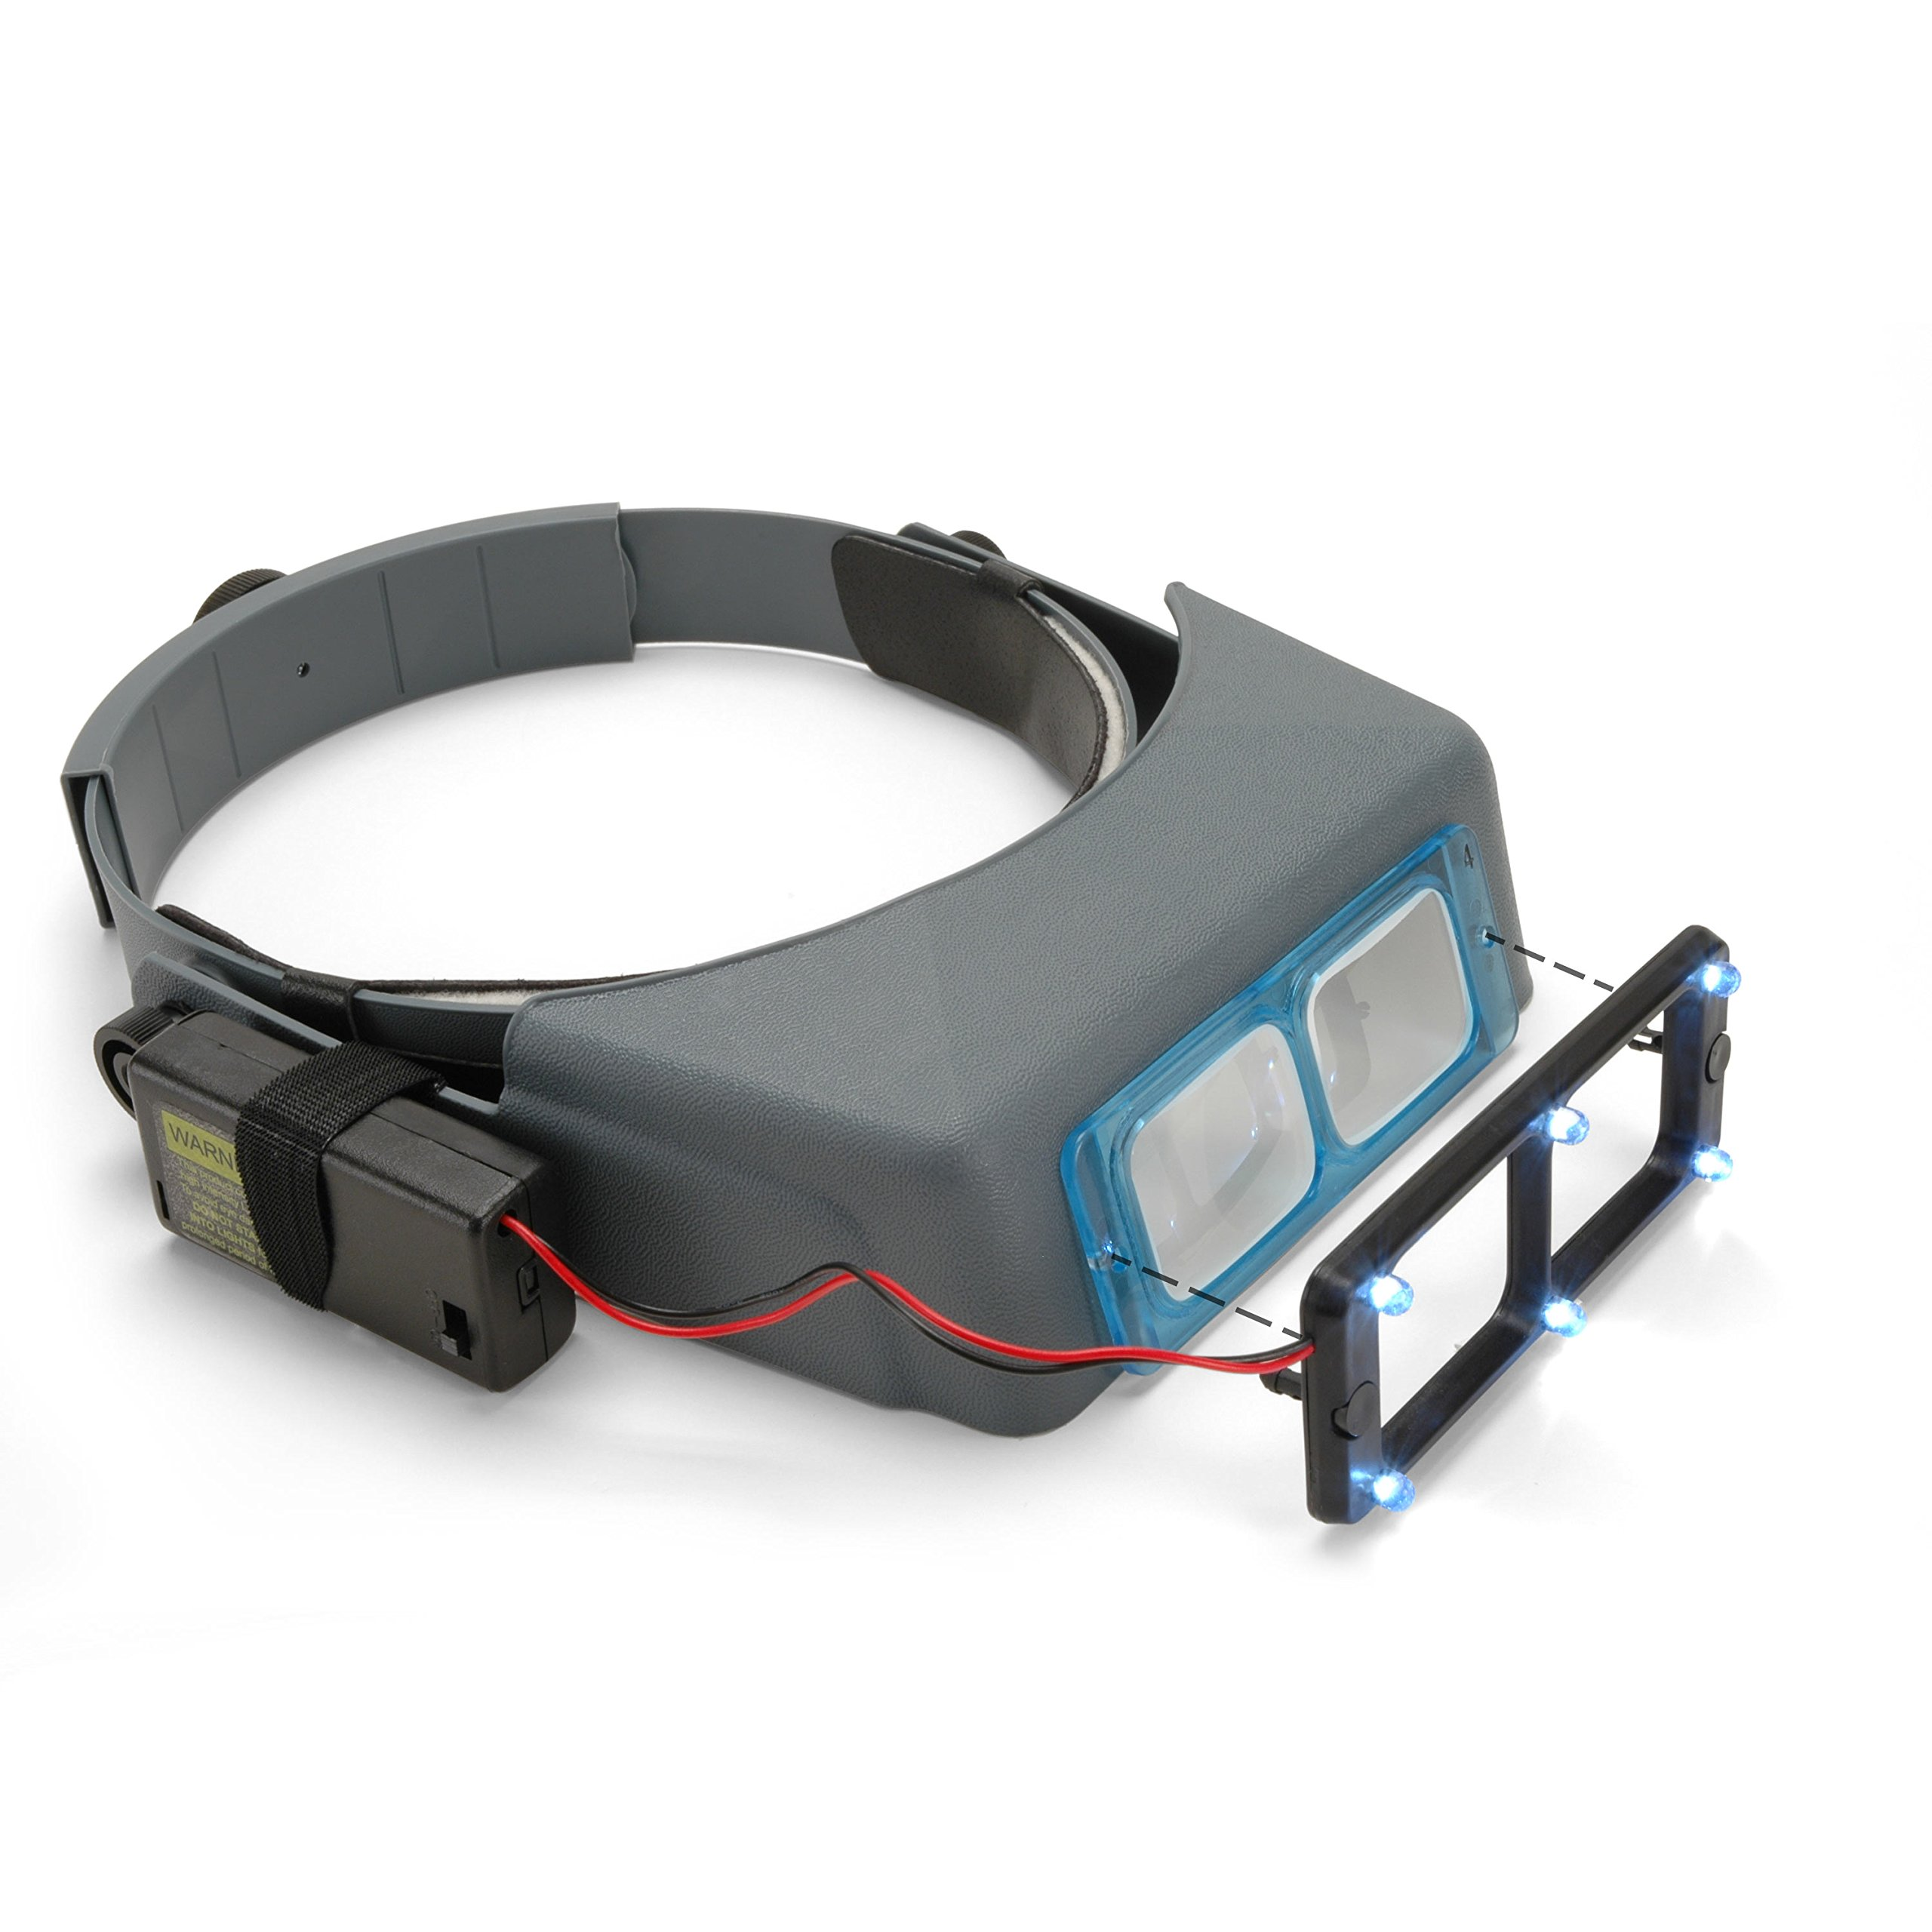 OptiVISOR Headband Magnifier, with Quasar LS Lights by StewMac